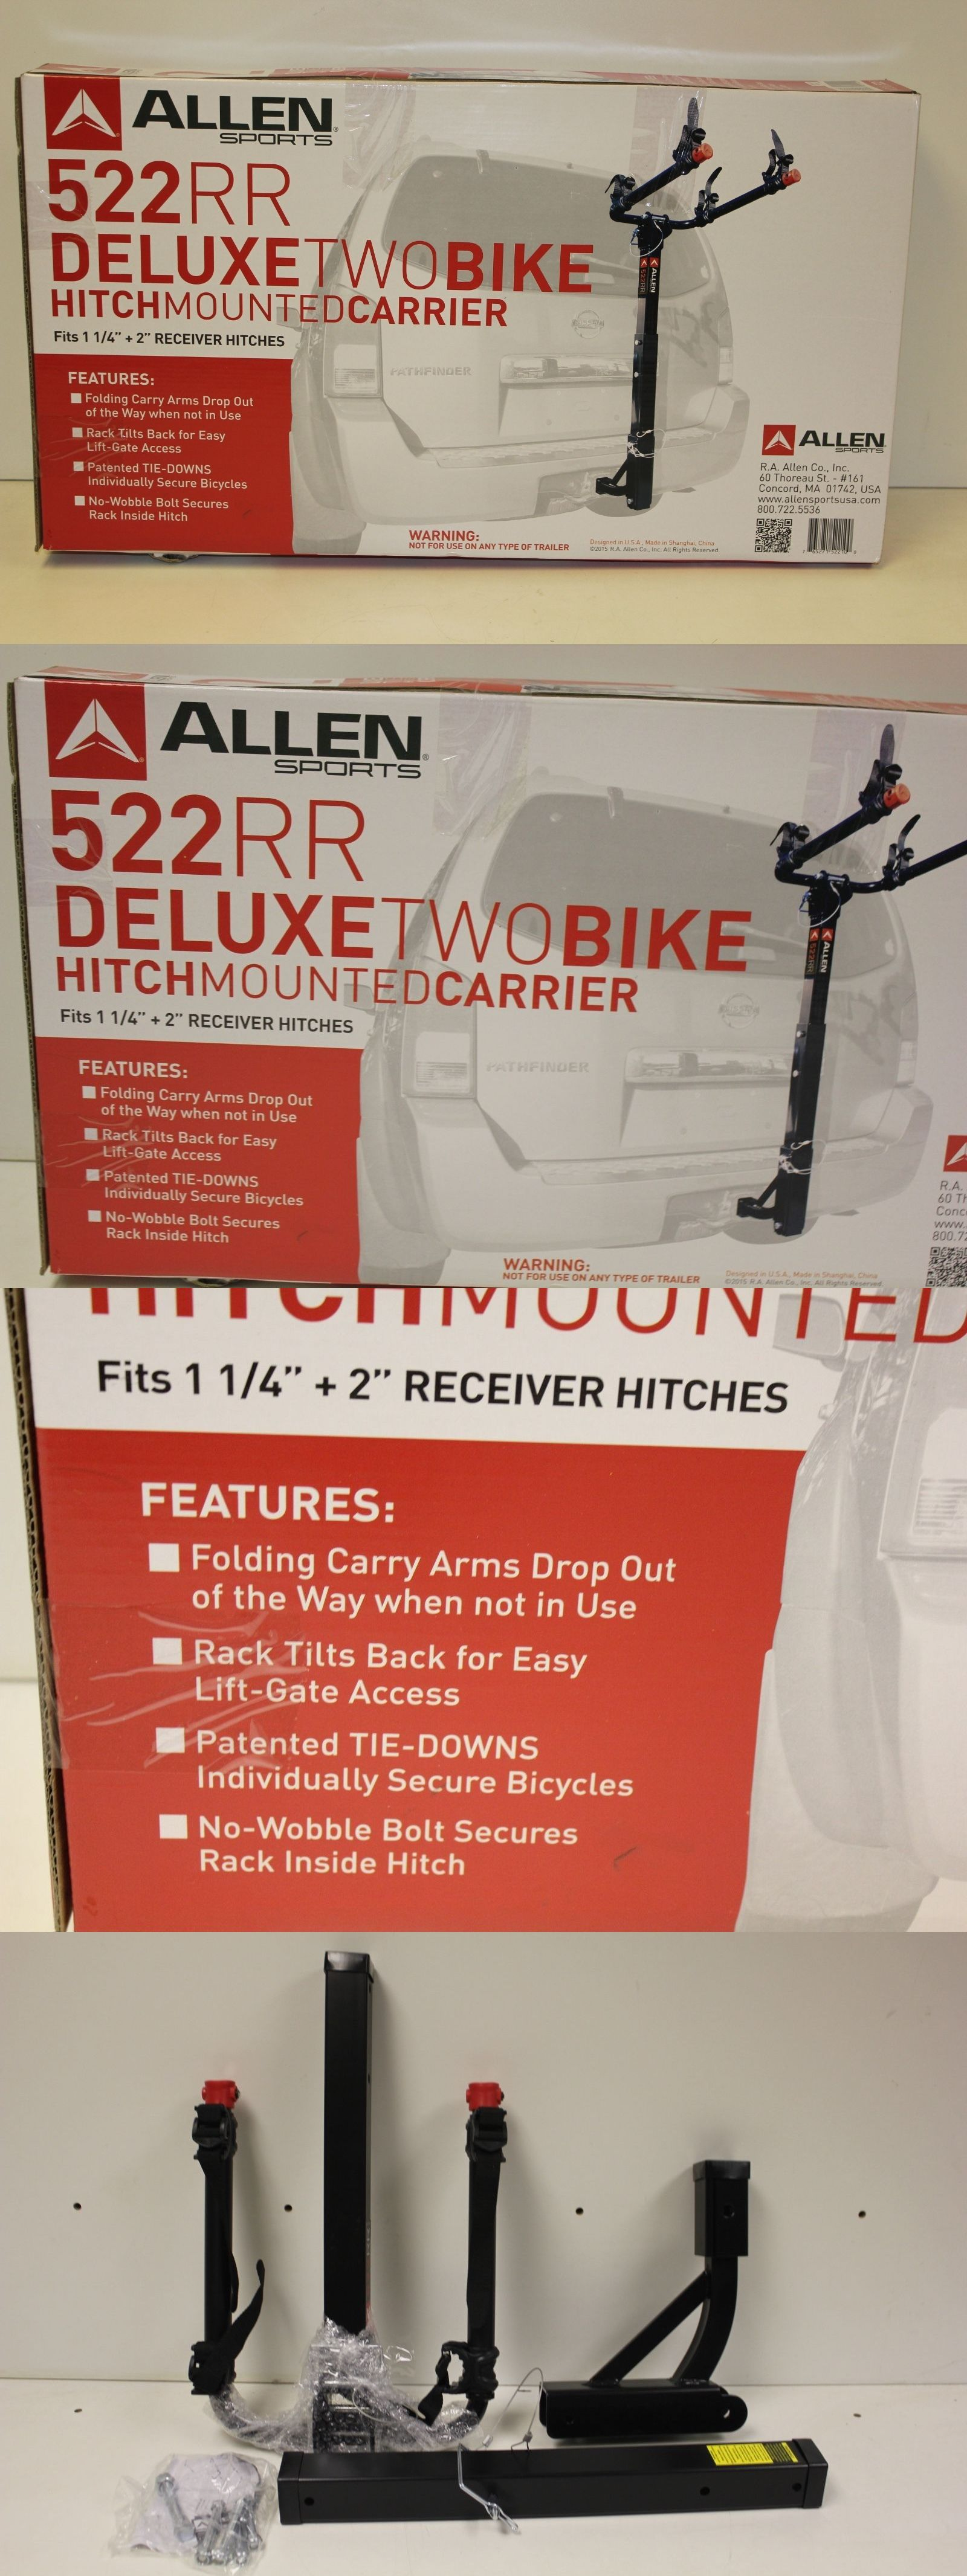 Car and Truck Racks 177849: Allen Sports 522Rr Deluxe 2- Bike Hitch Mounted Bike Rack 11 4 2 Hitch New -> BUY IT NOW ONLY: $97.99 on eBay!